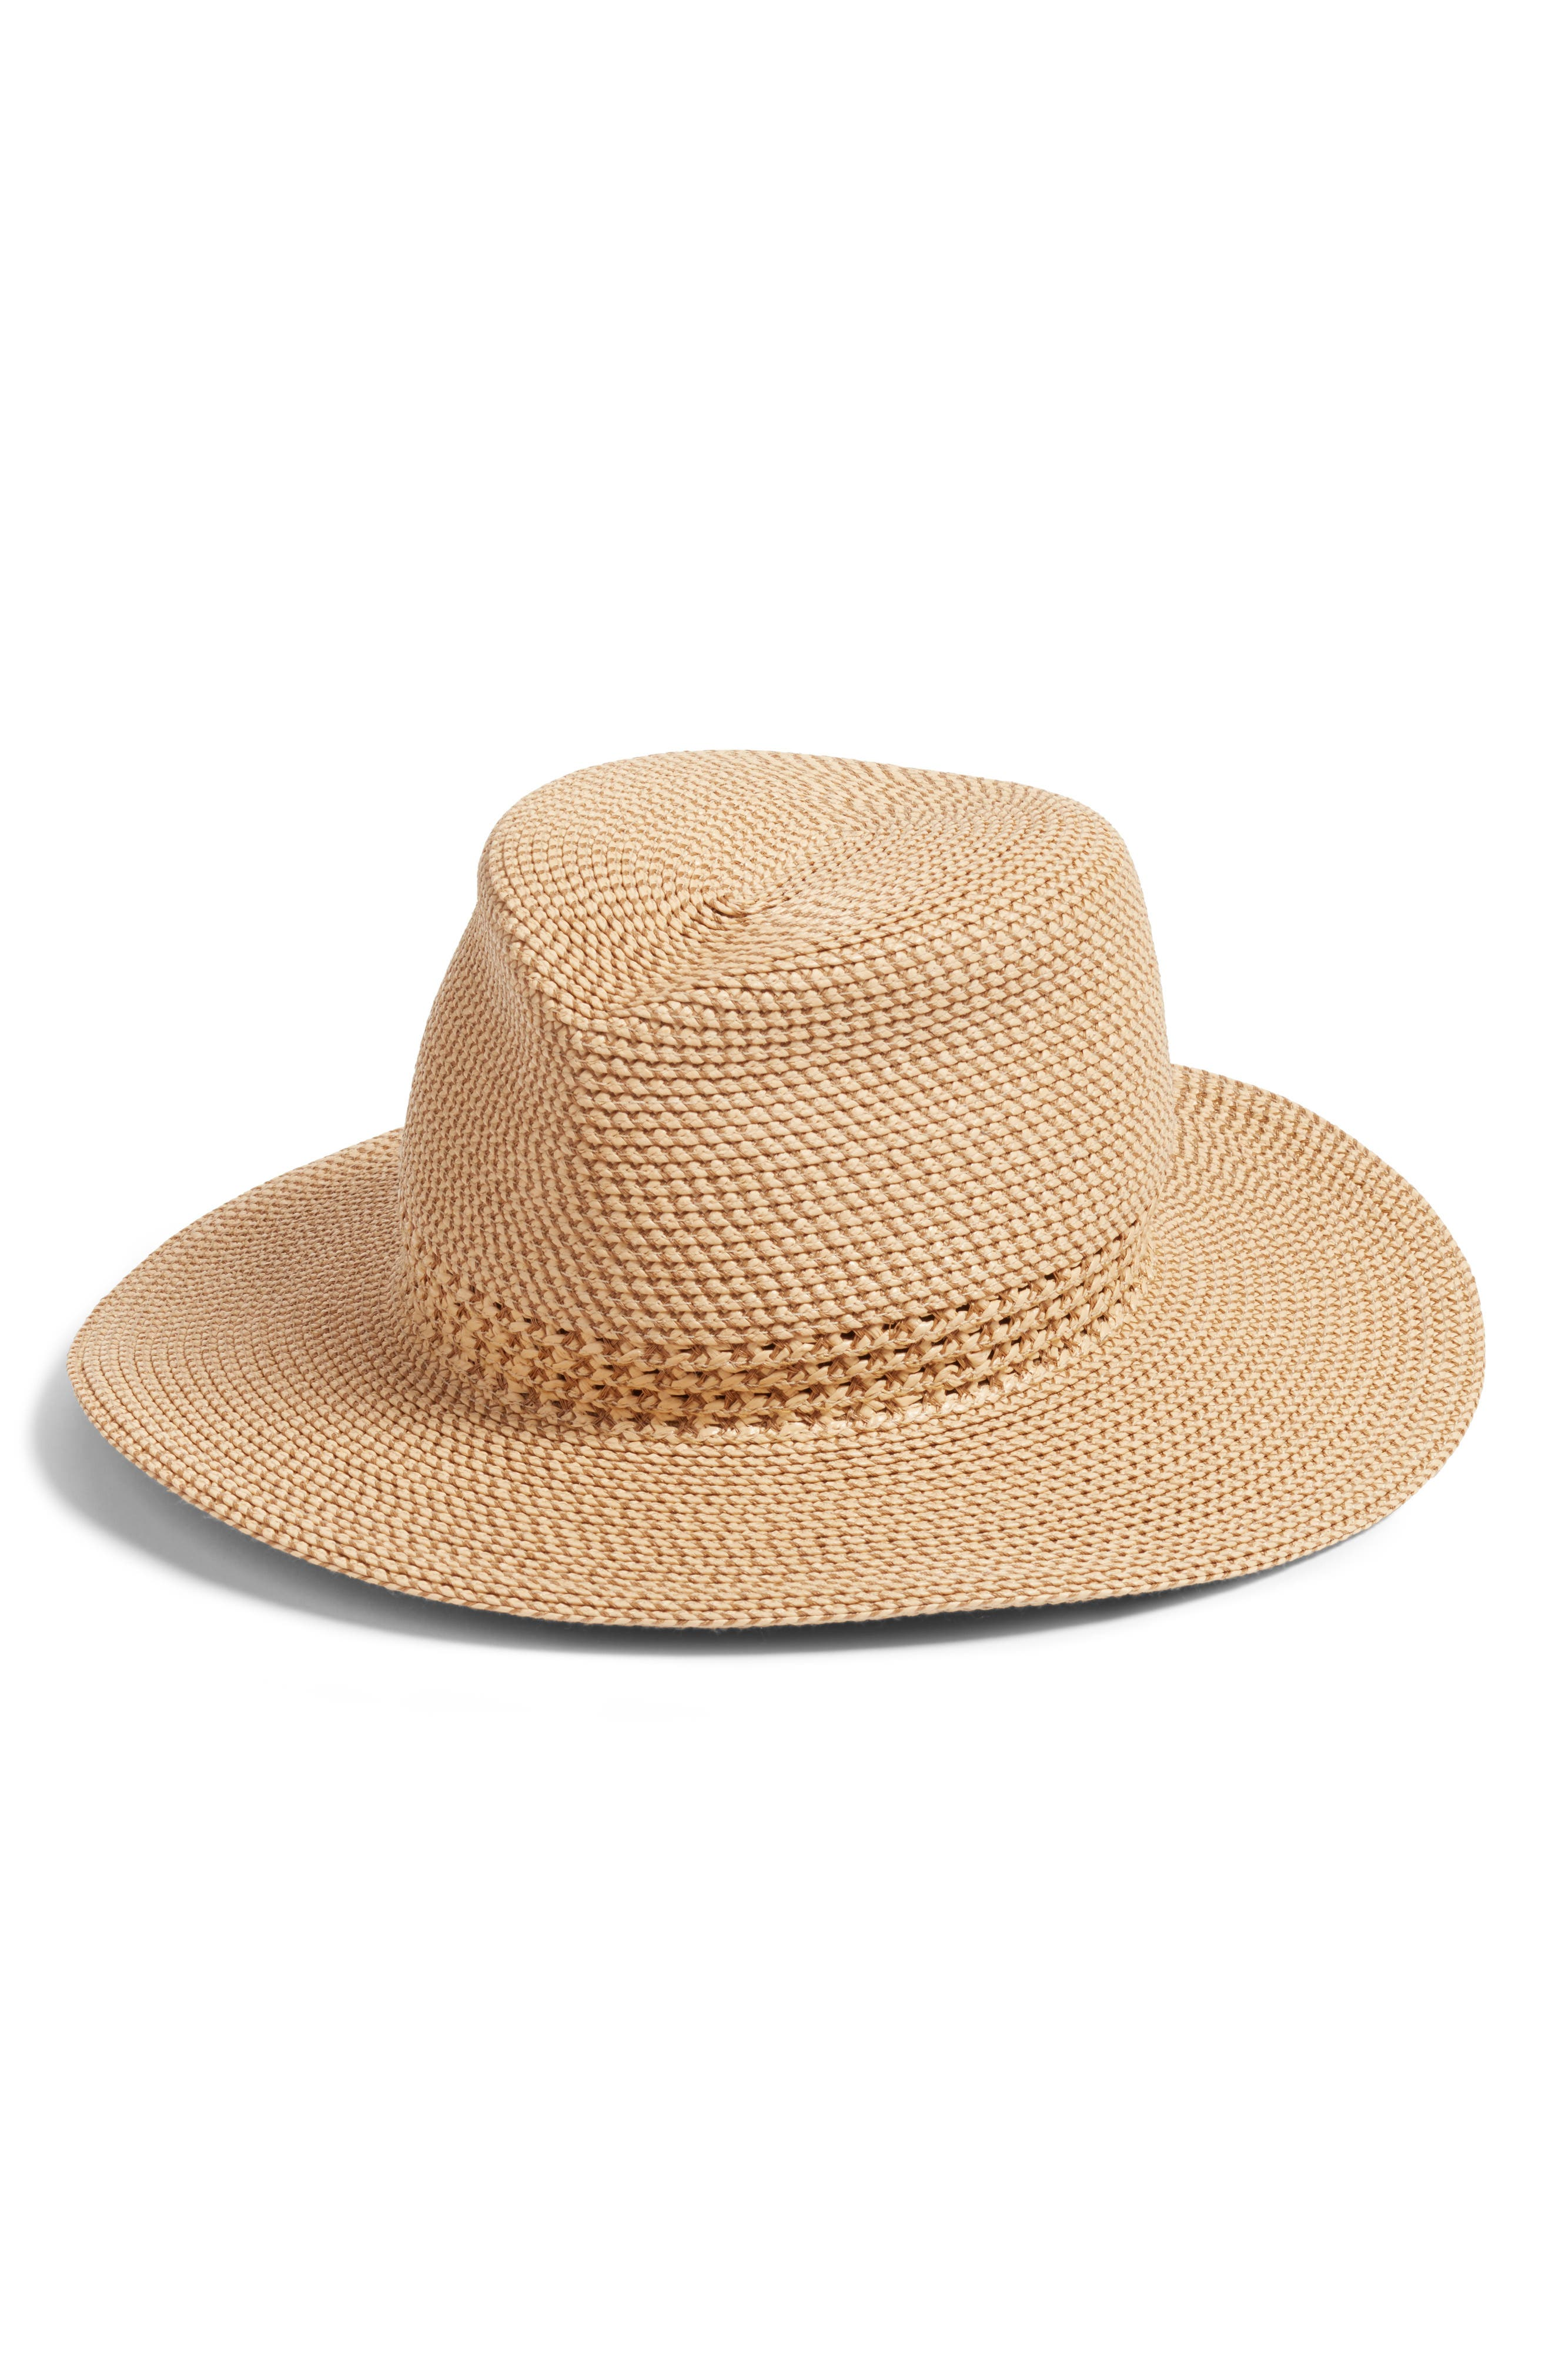 Bayou Packable Squishee<sup>®</sup> Fedora,                             Main thumbnail 1, color,                             PEANUT